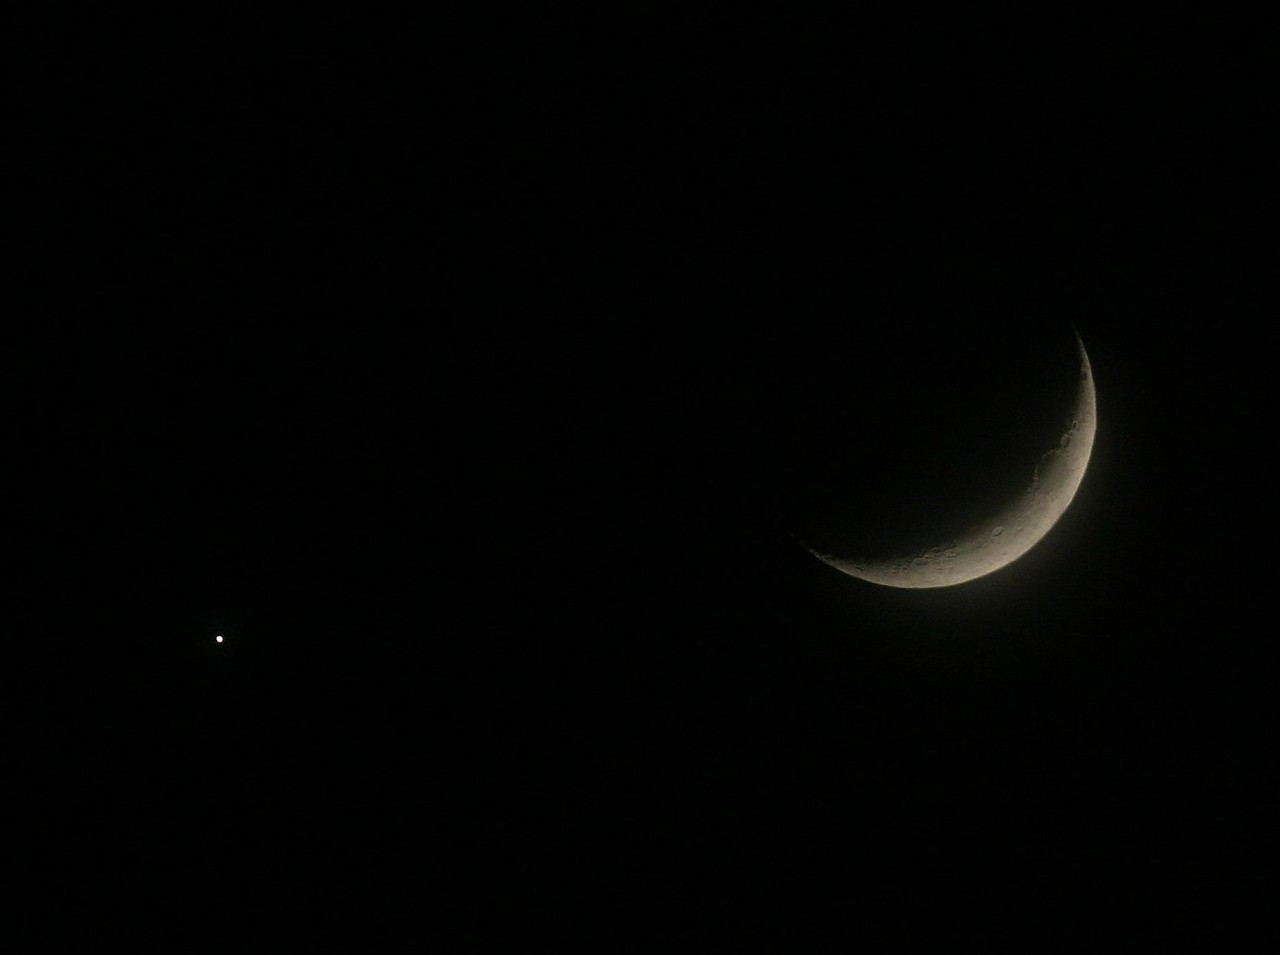 The Moon and a Star or planet doing a weird formation. <br /> For an excellent close up of the moon you must view photo in the Origonal size. Pretty good for handheld shot.